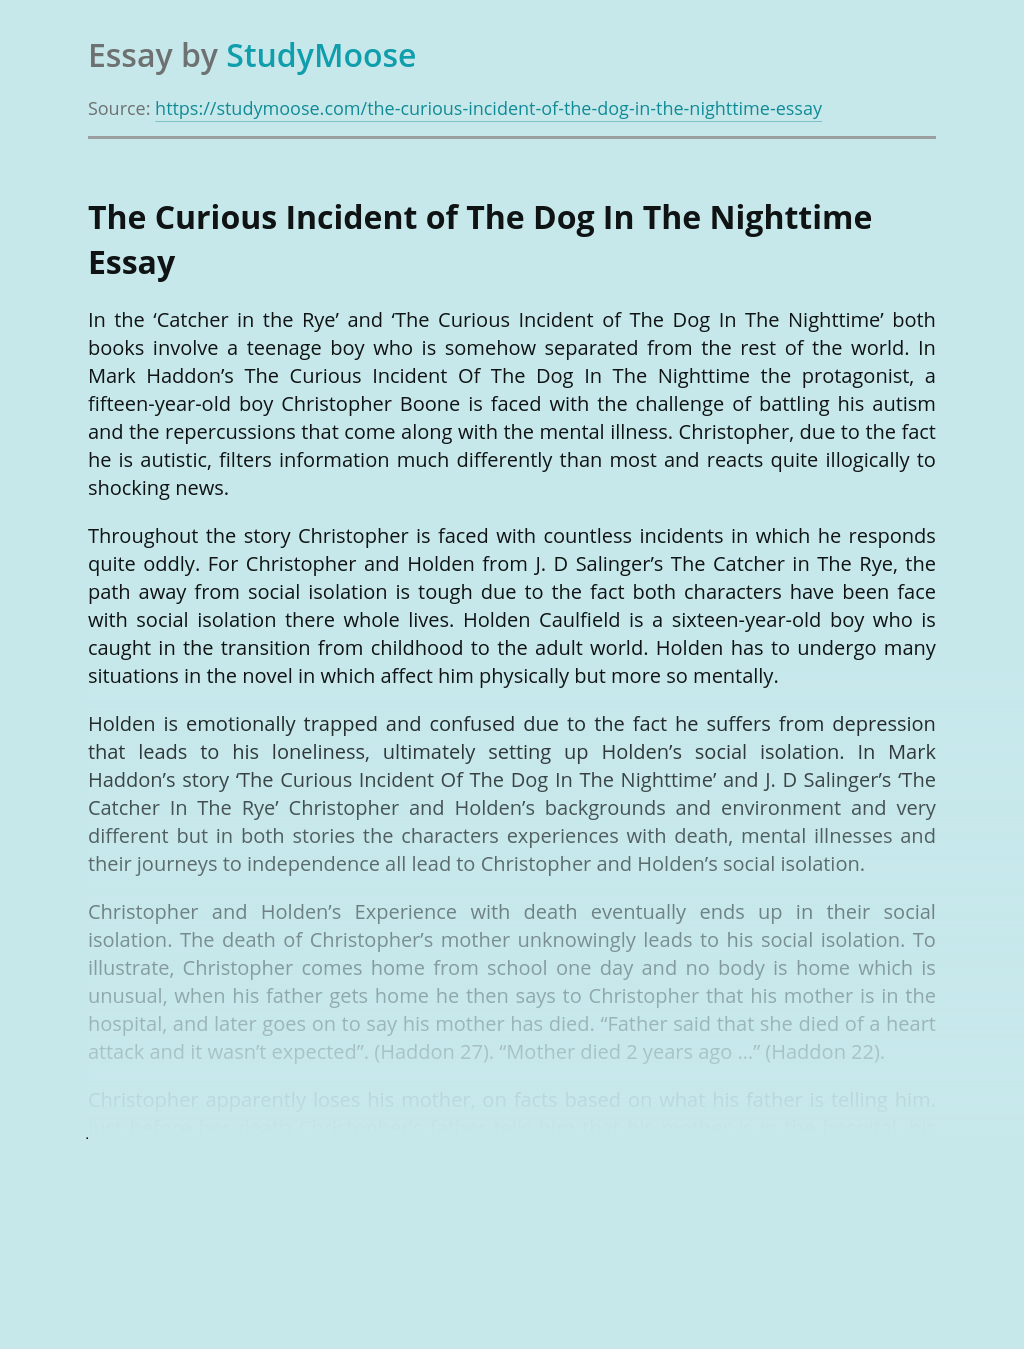 The Curious Incident of The Dog In The Nighttime: Protagonist Analysis